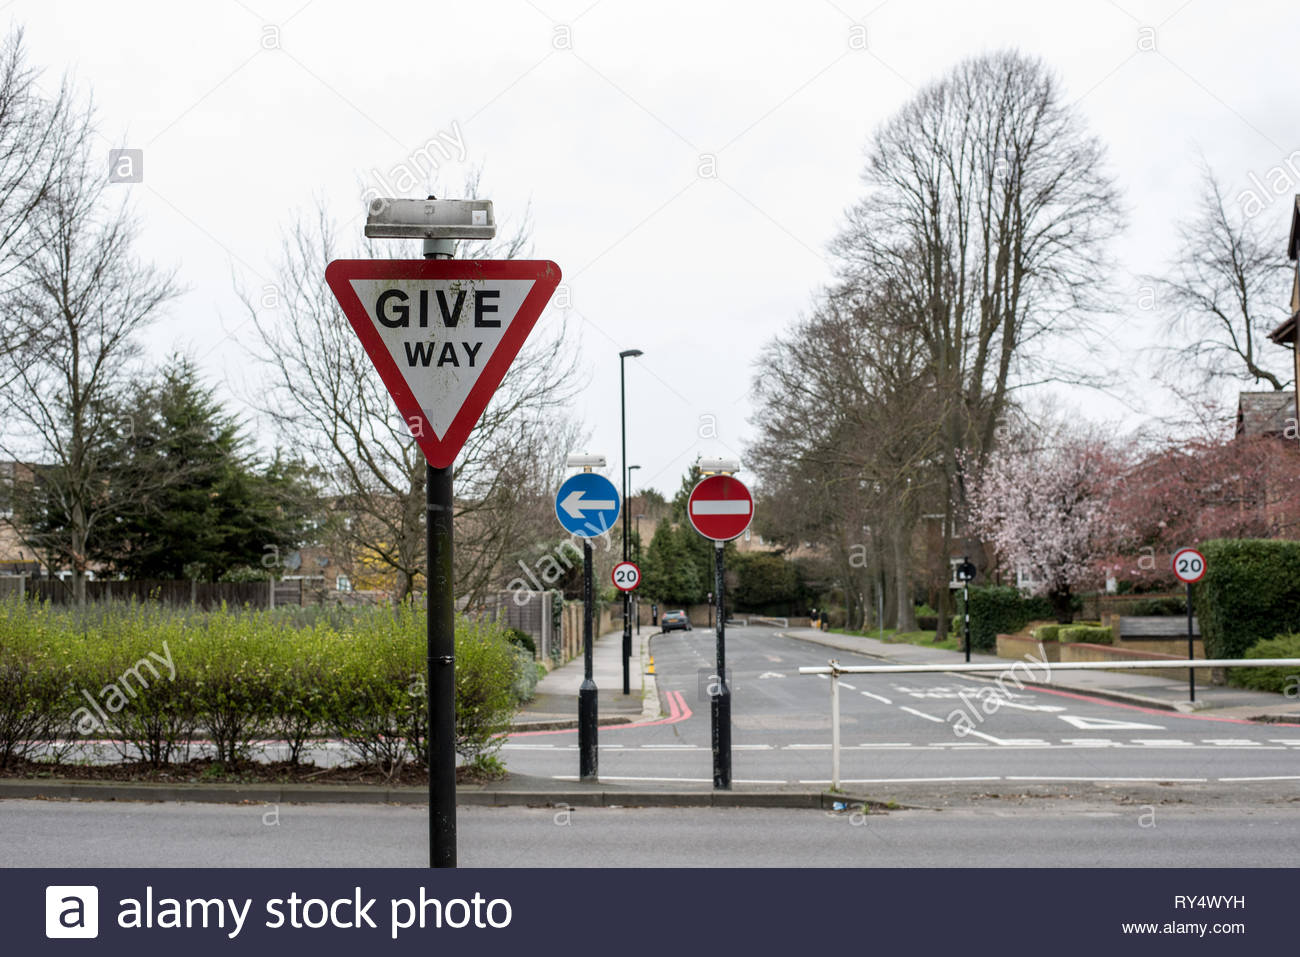 GIVE WAY road sign in England Stock Photo